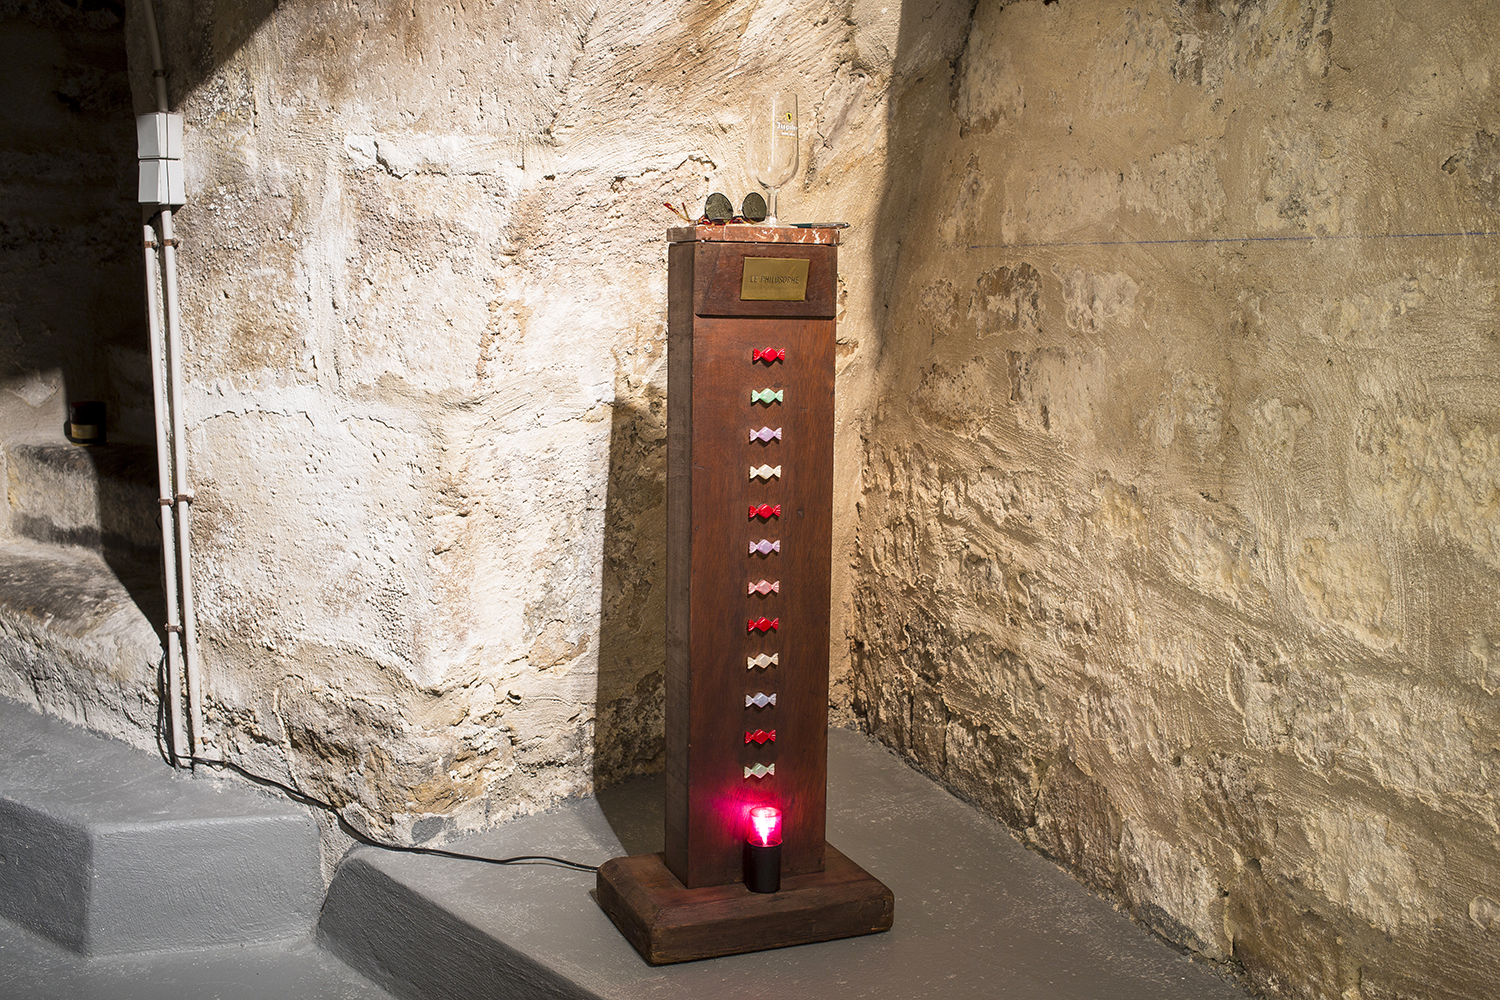 Pierre Petit Le Philosophe, 1989 Wooden base, marble, engraved copper plate, plastic candies, glasses, Jupiler glass, pencil, strobe 113 x 25 x 25 cm